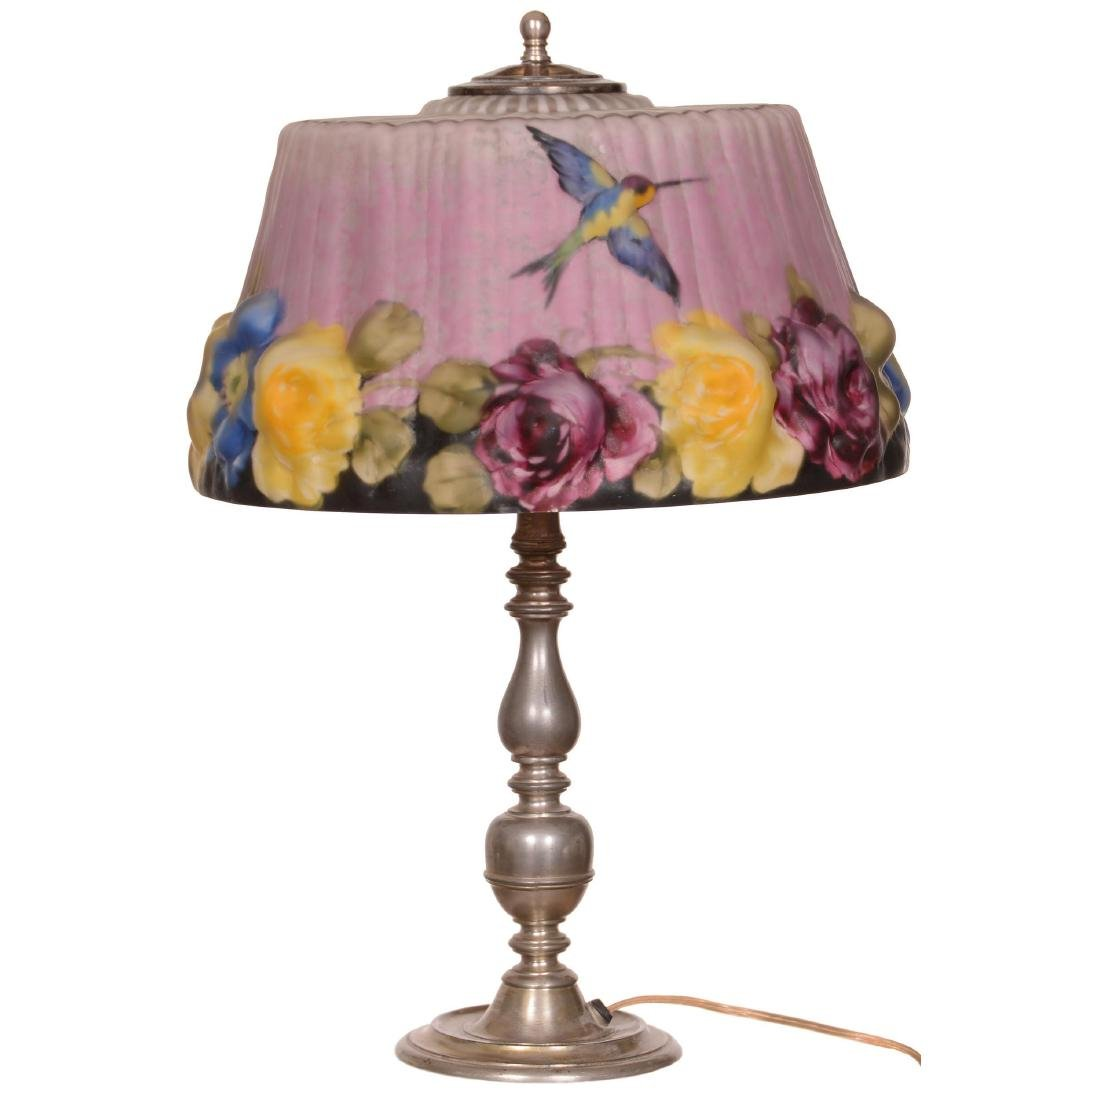 Original Pairpoint Puffy Table Lamp - 2